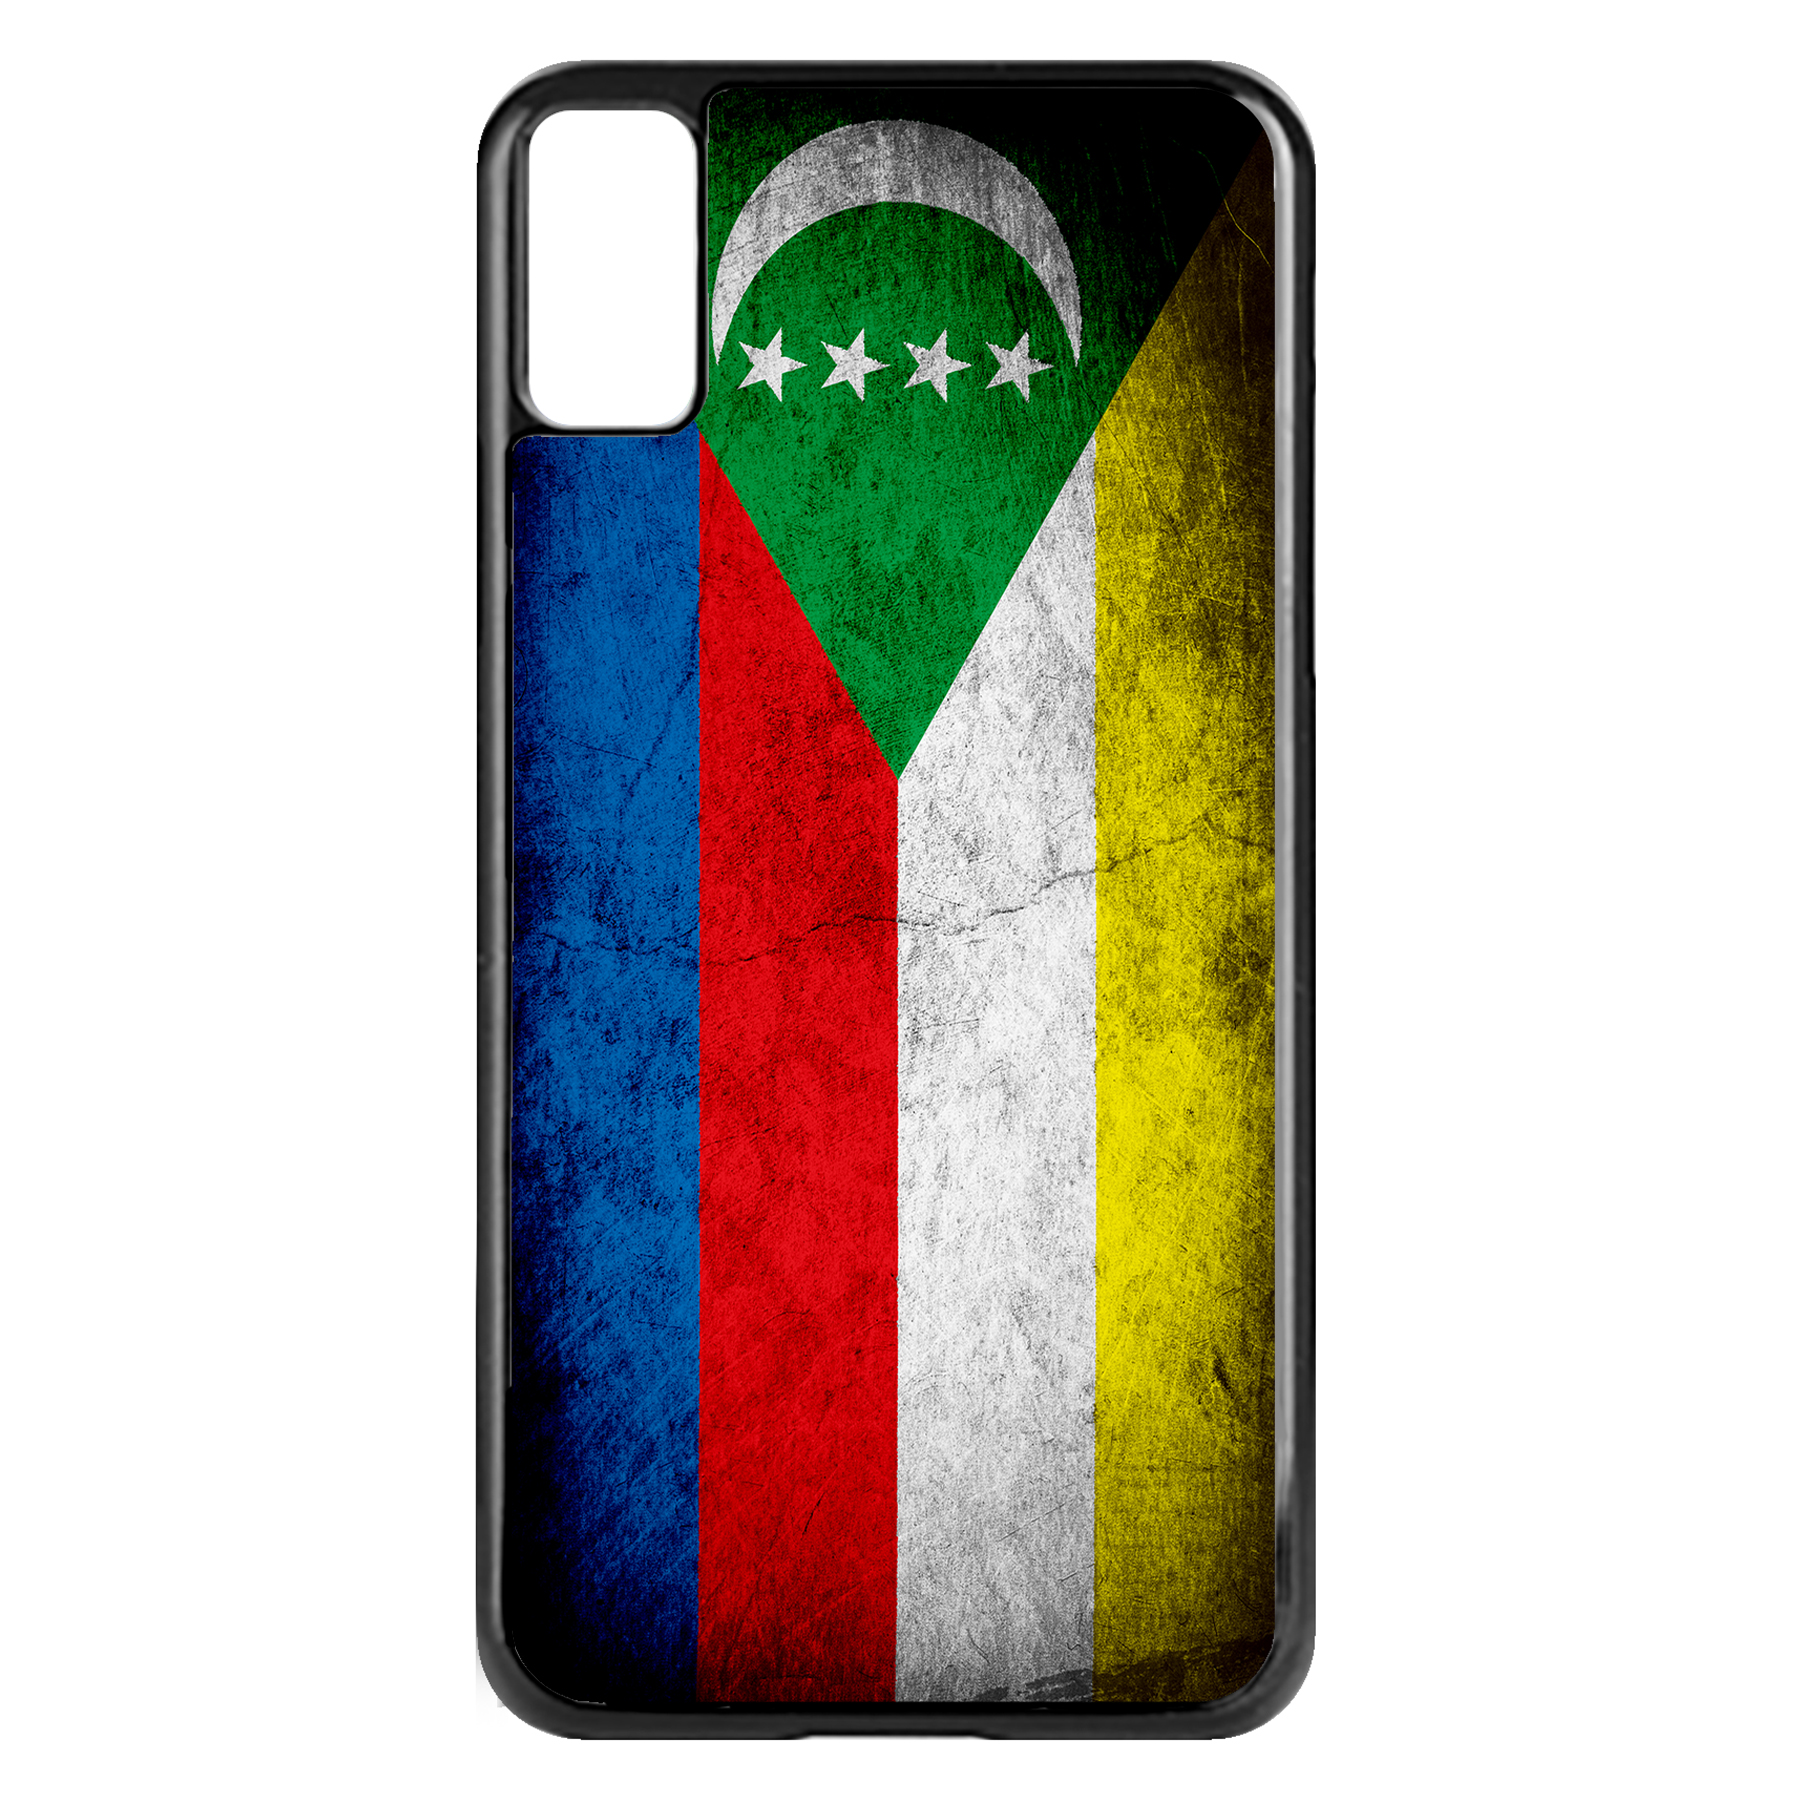 Apple-iPhone-Case-with-Flag-of-Comoros-Comorian-Many-Design-Options thumbnail 68